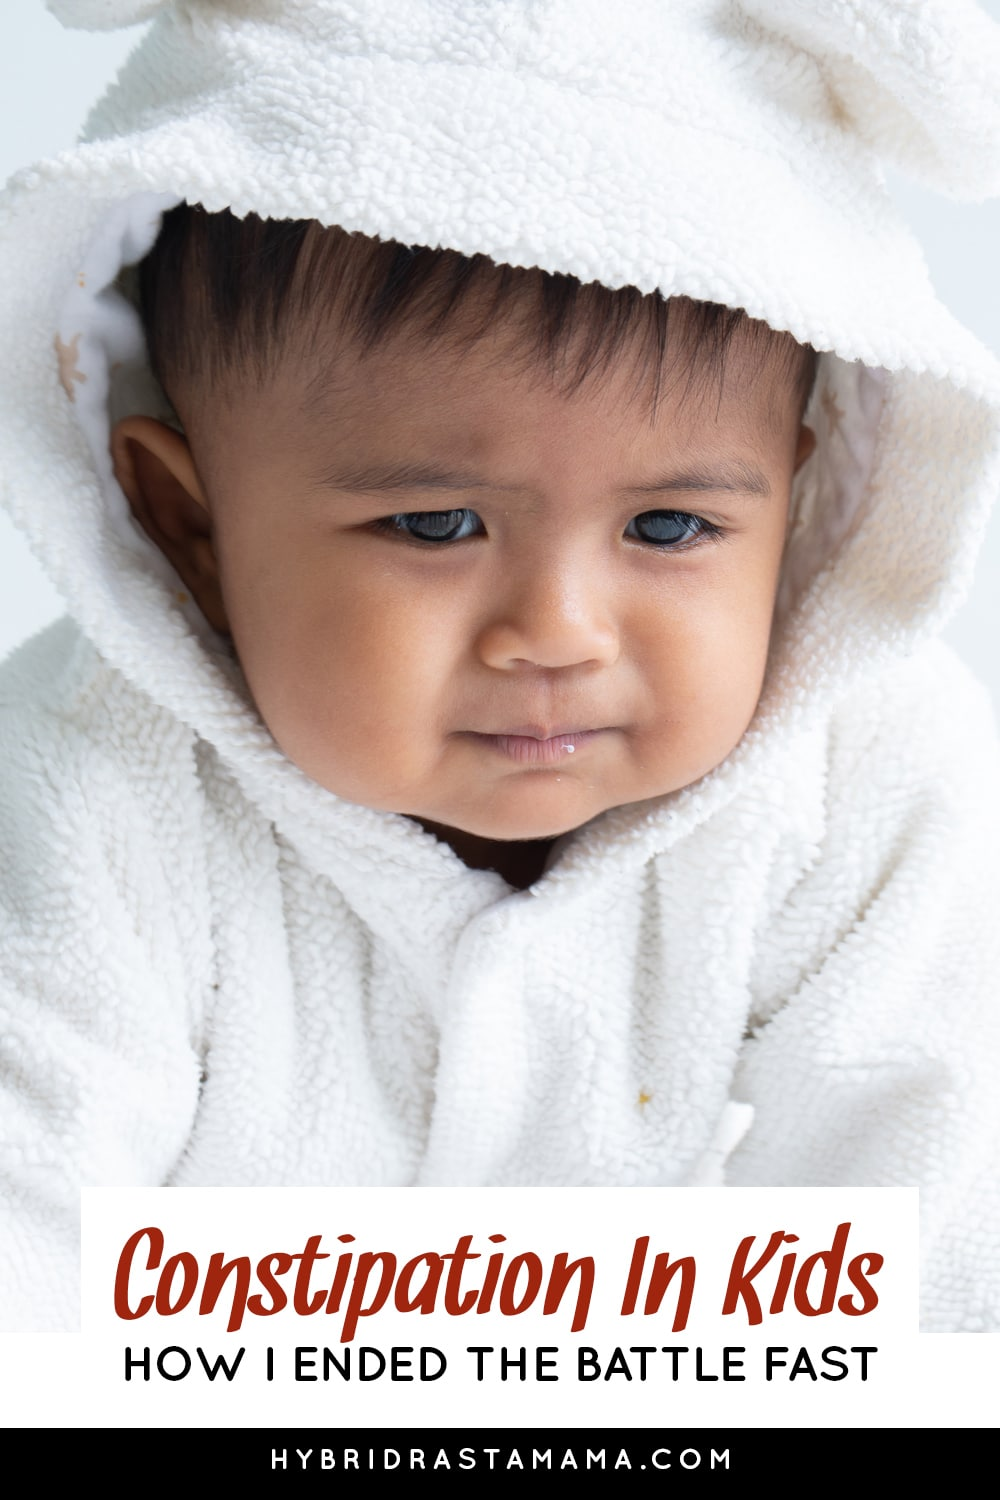 A constipated child in a white robe with a hood looking miserable.